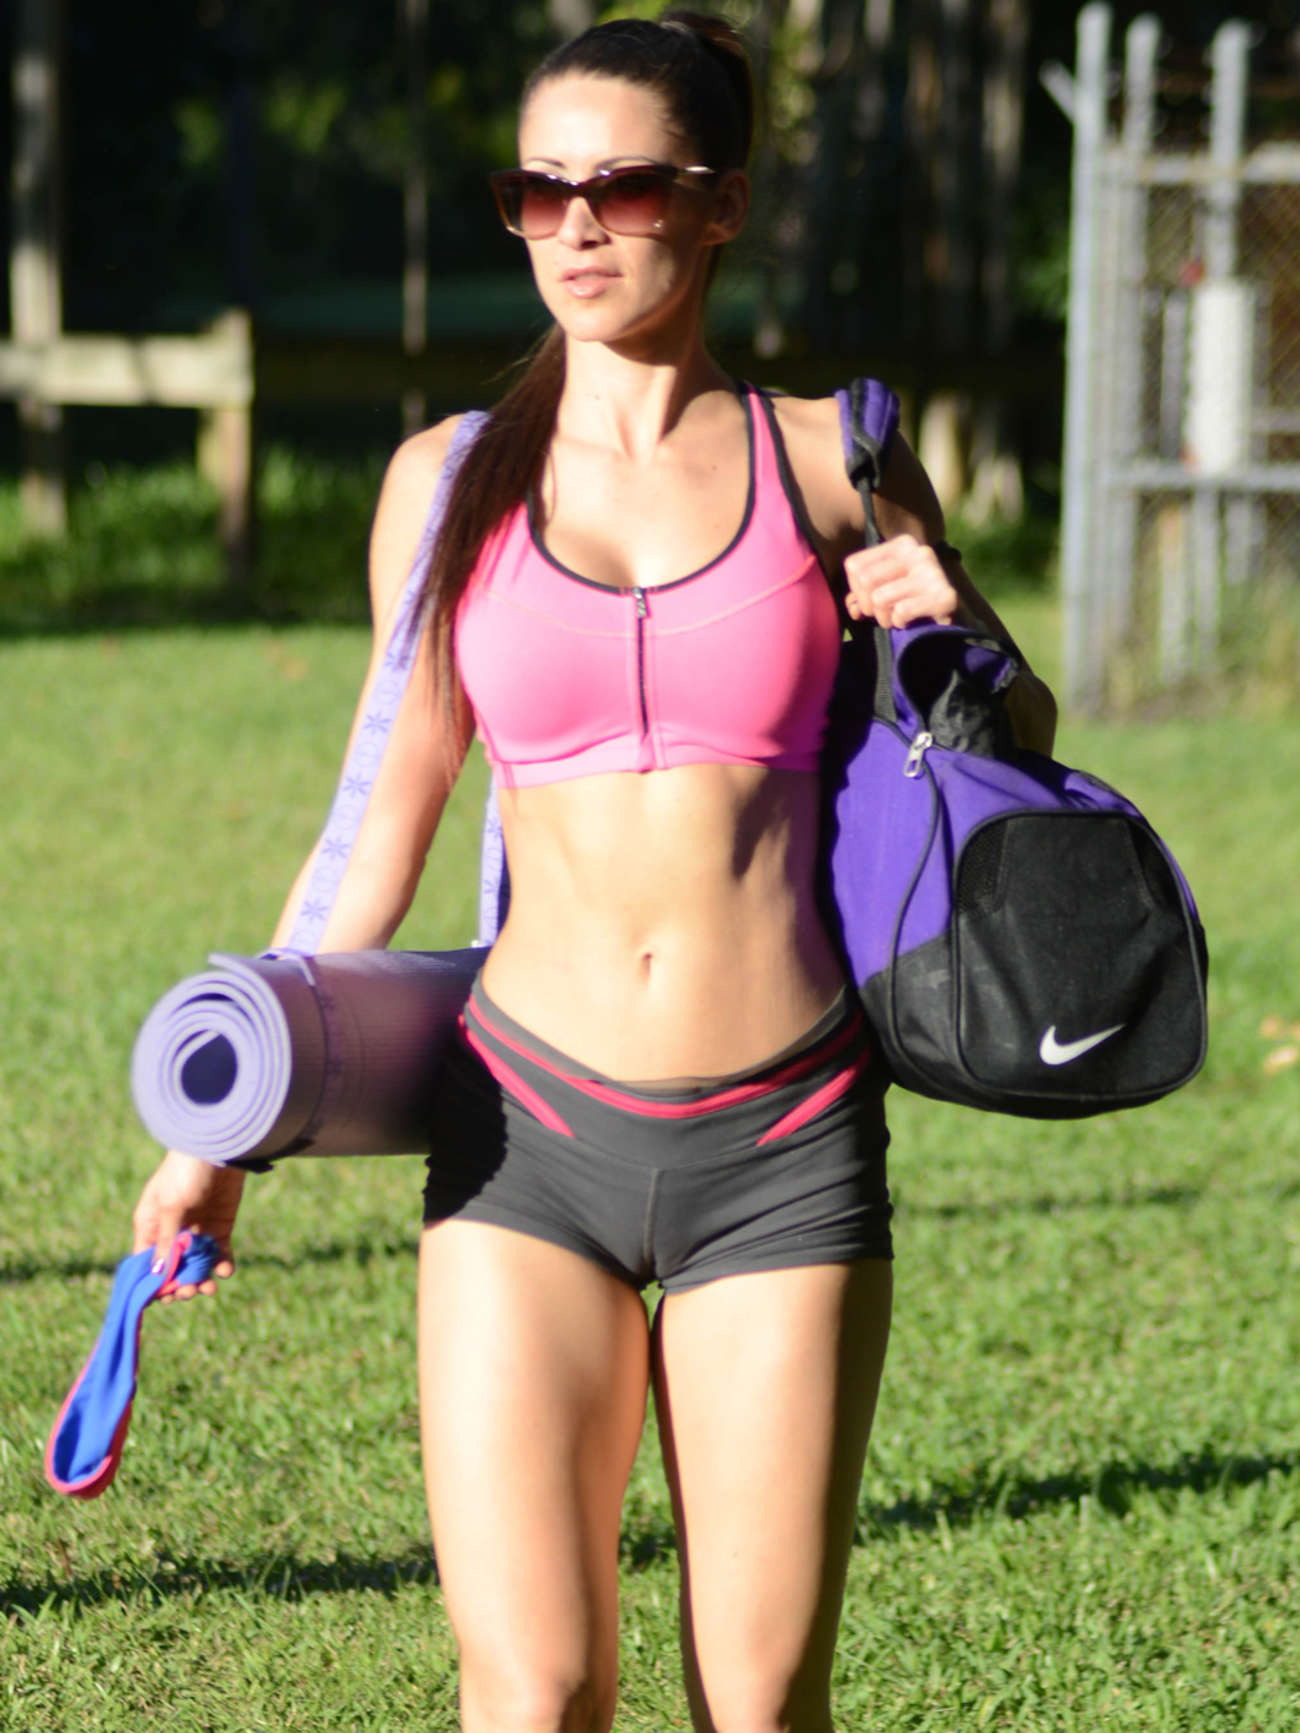 Anais Zanotti anais zanotti in shorts doing yoga -11 | gotceleb